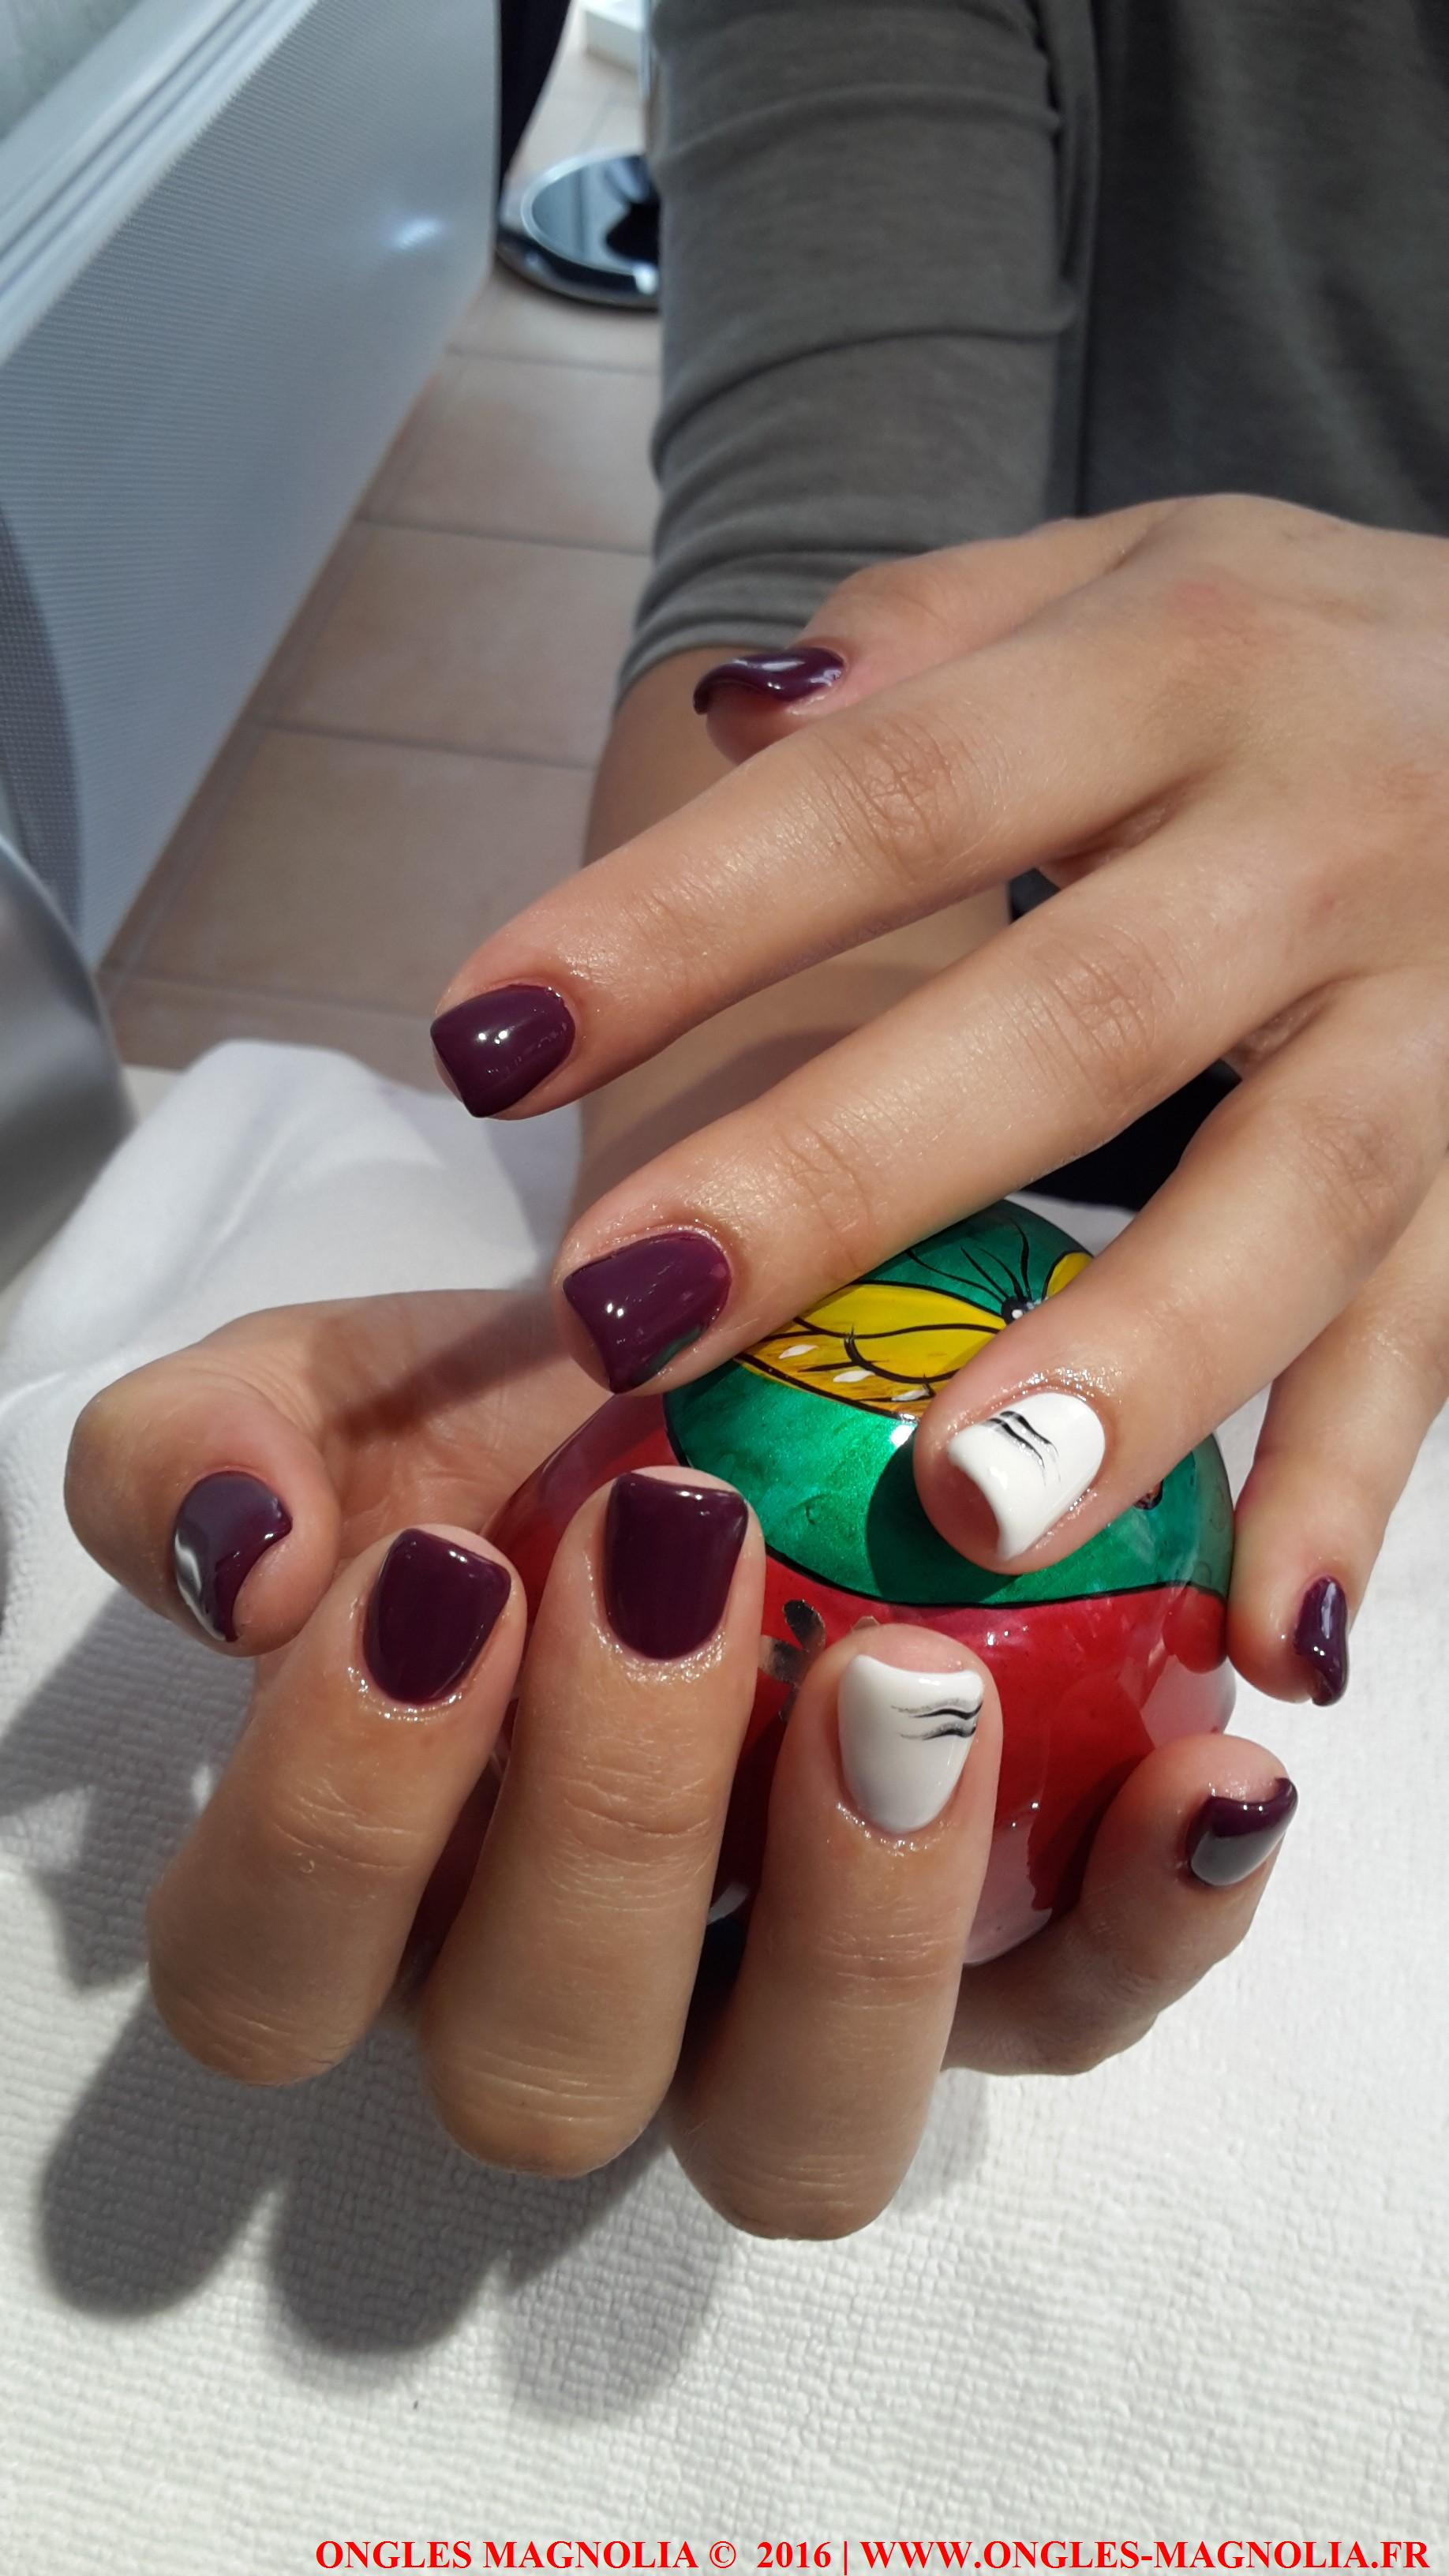 Pose ongles nail art neuville sur saone lyon ongles magnolia